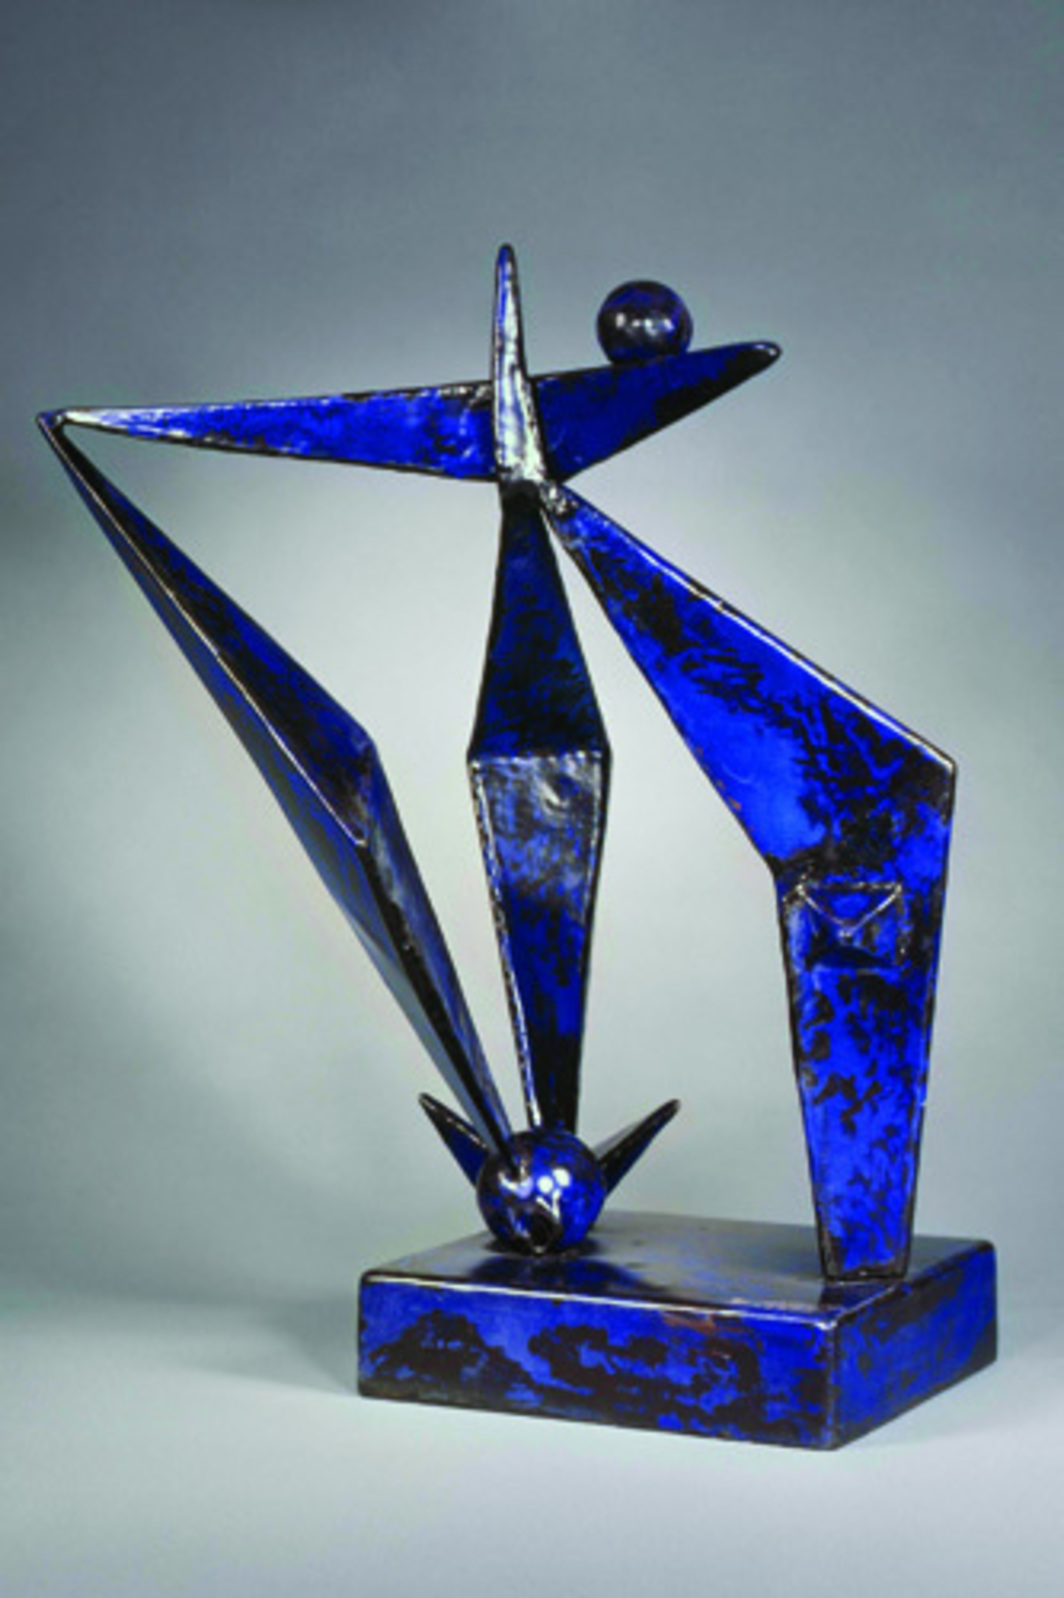 "David Smith, Blue Construction, 1938, sheet steel with baked-enamel finish, 36 1/4 x 28 1/2 x 30"". © Estate of David Smith"